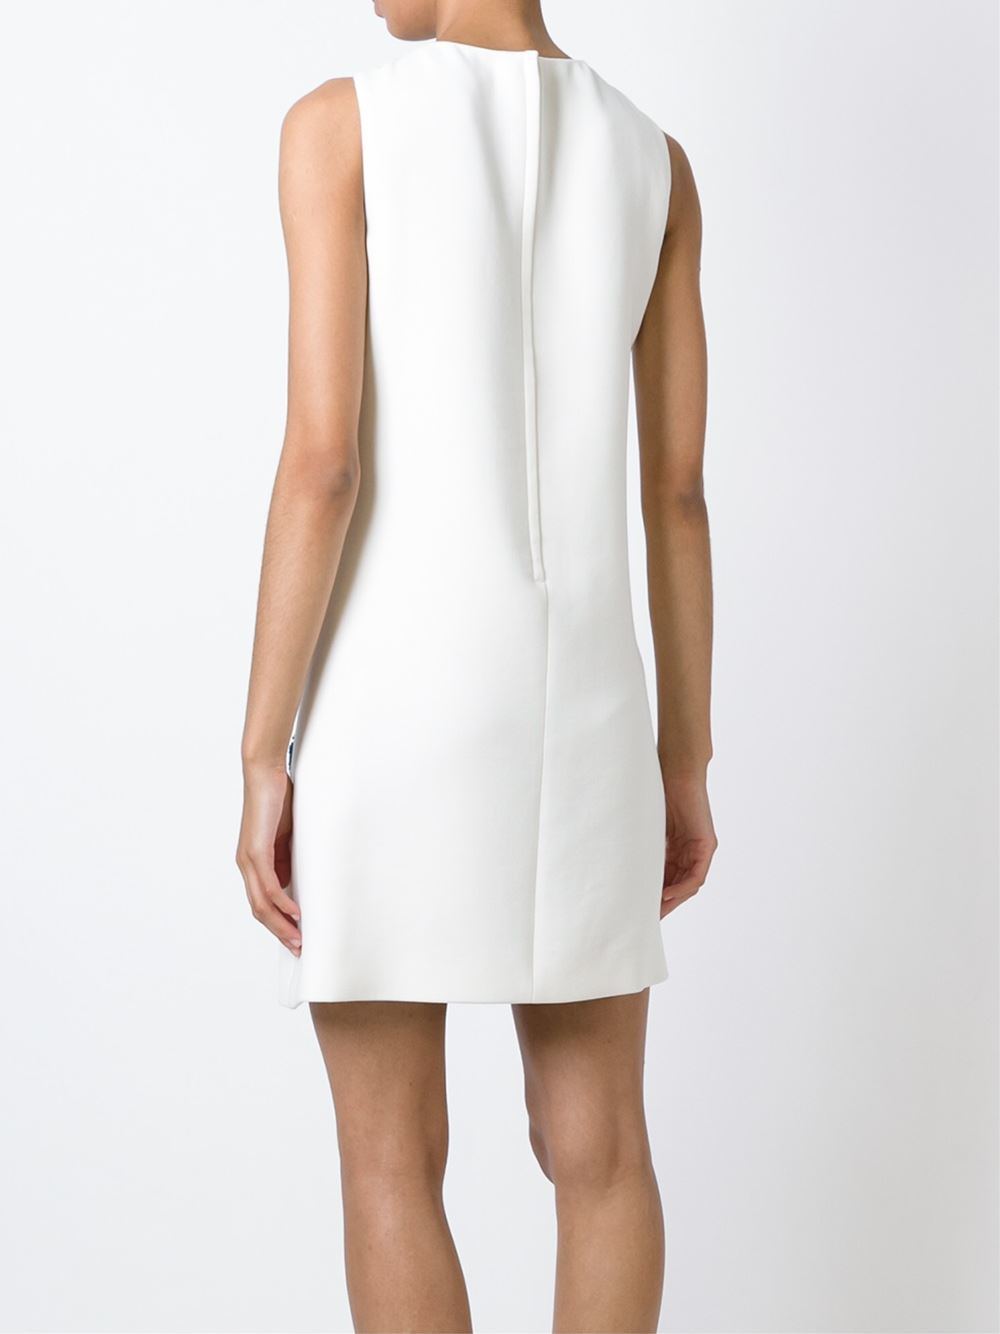 White dress drawing - Gallery